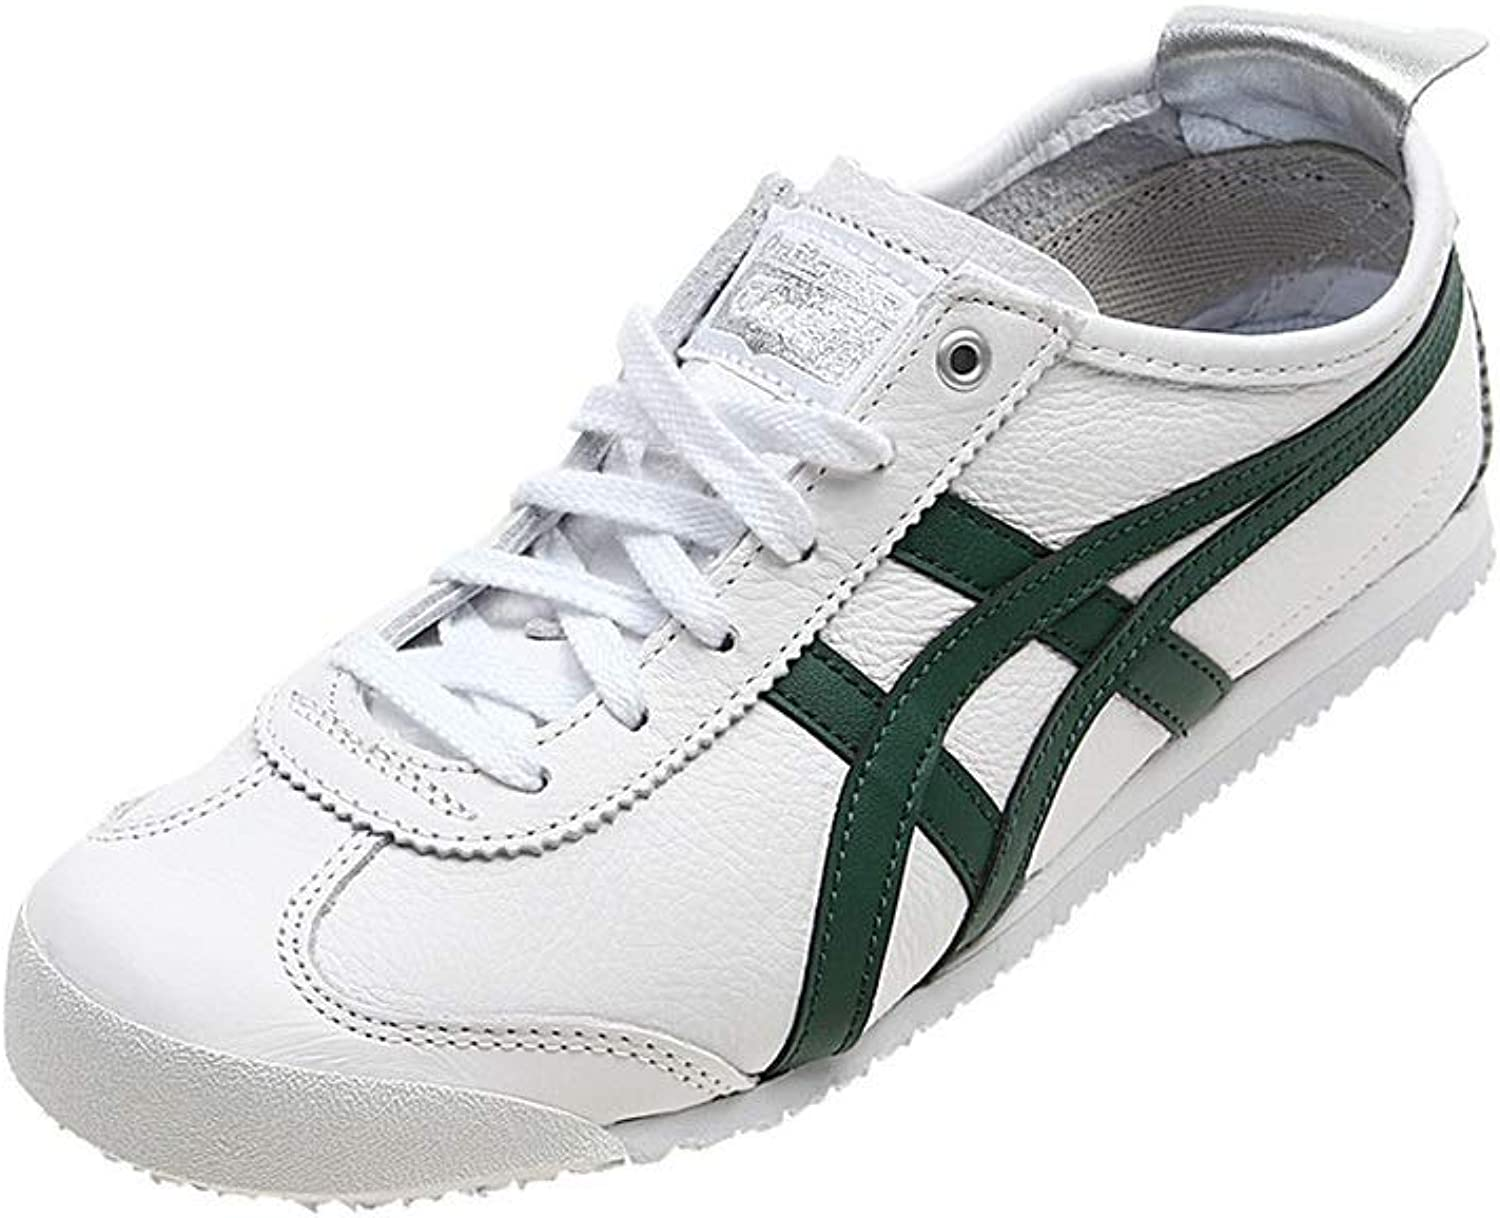 Onitsuka Tiger Mexico 66 Trainers in White Leather